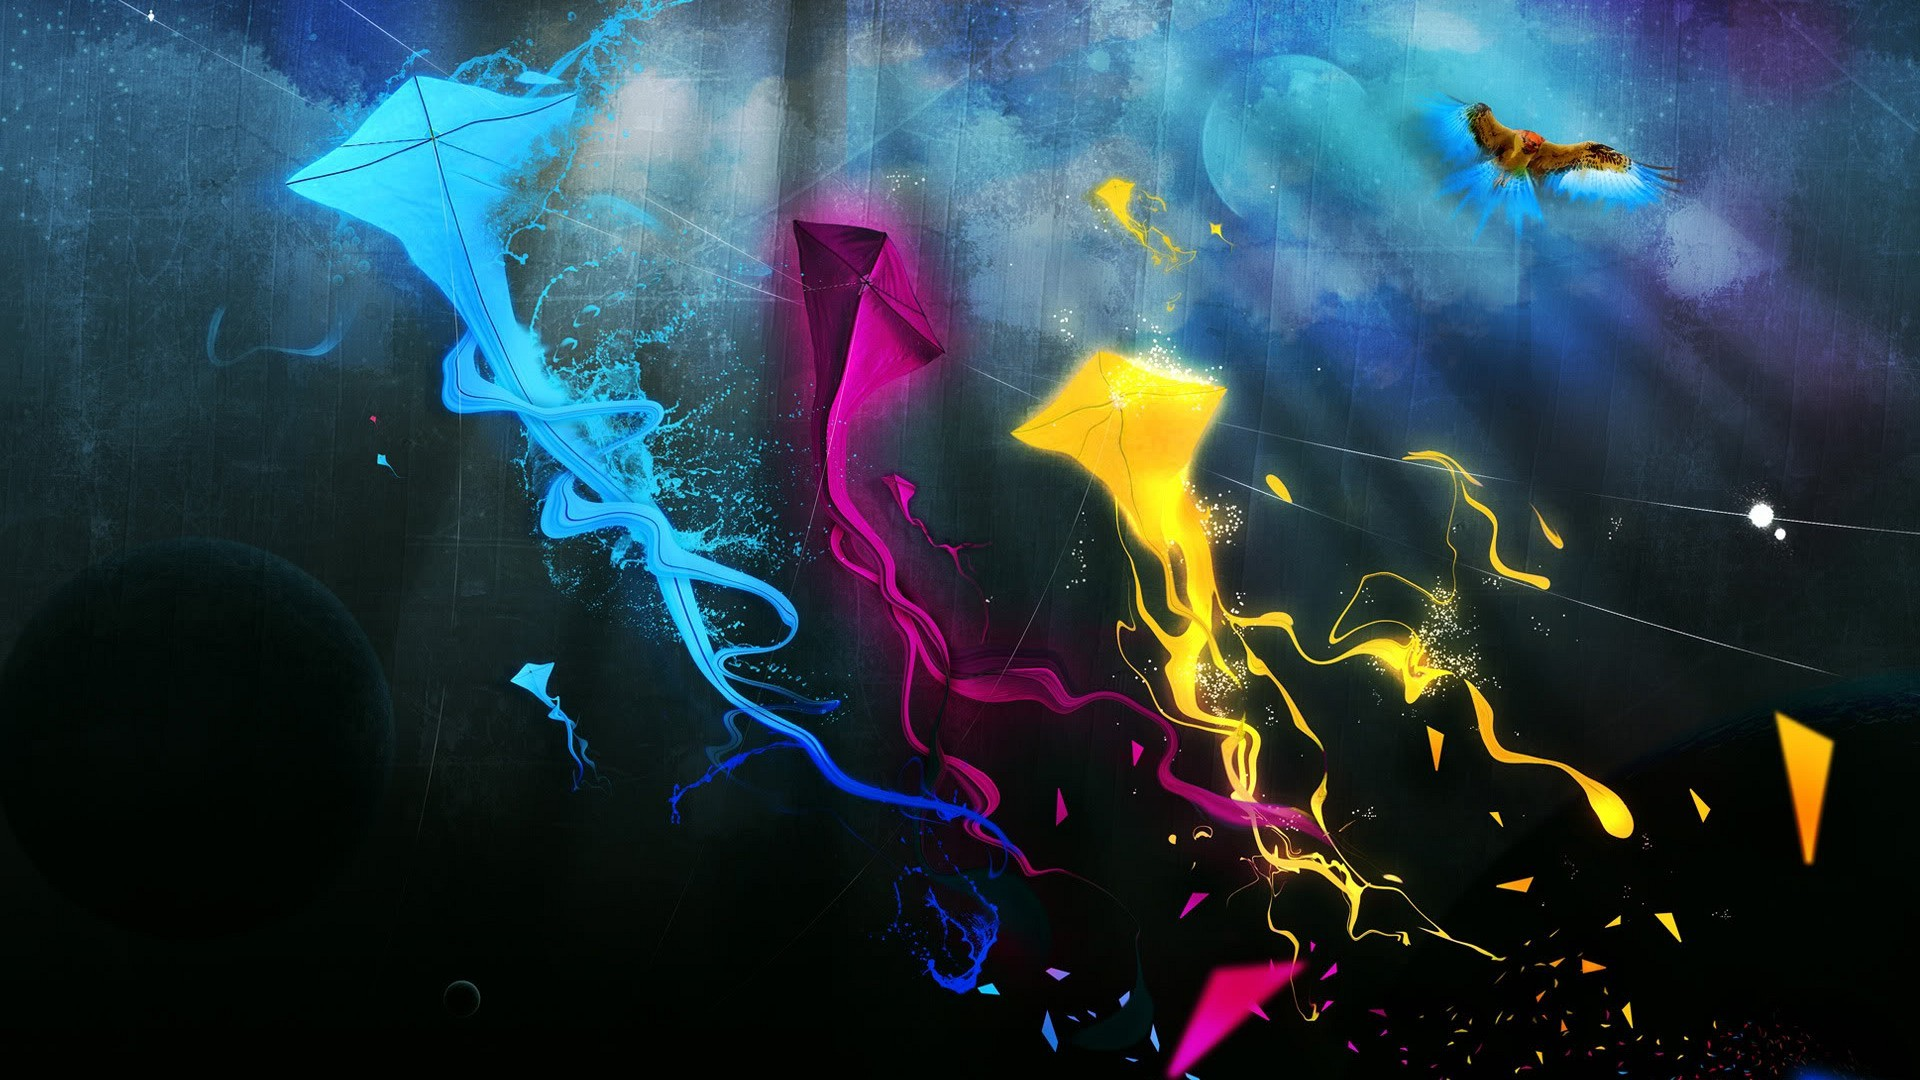 1920x1080 Hd Abstract 720p Hd 3d Wallpaper 1080p #7801 Hd Wallpapers Background .